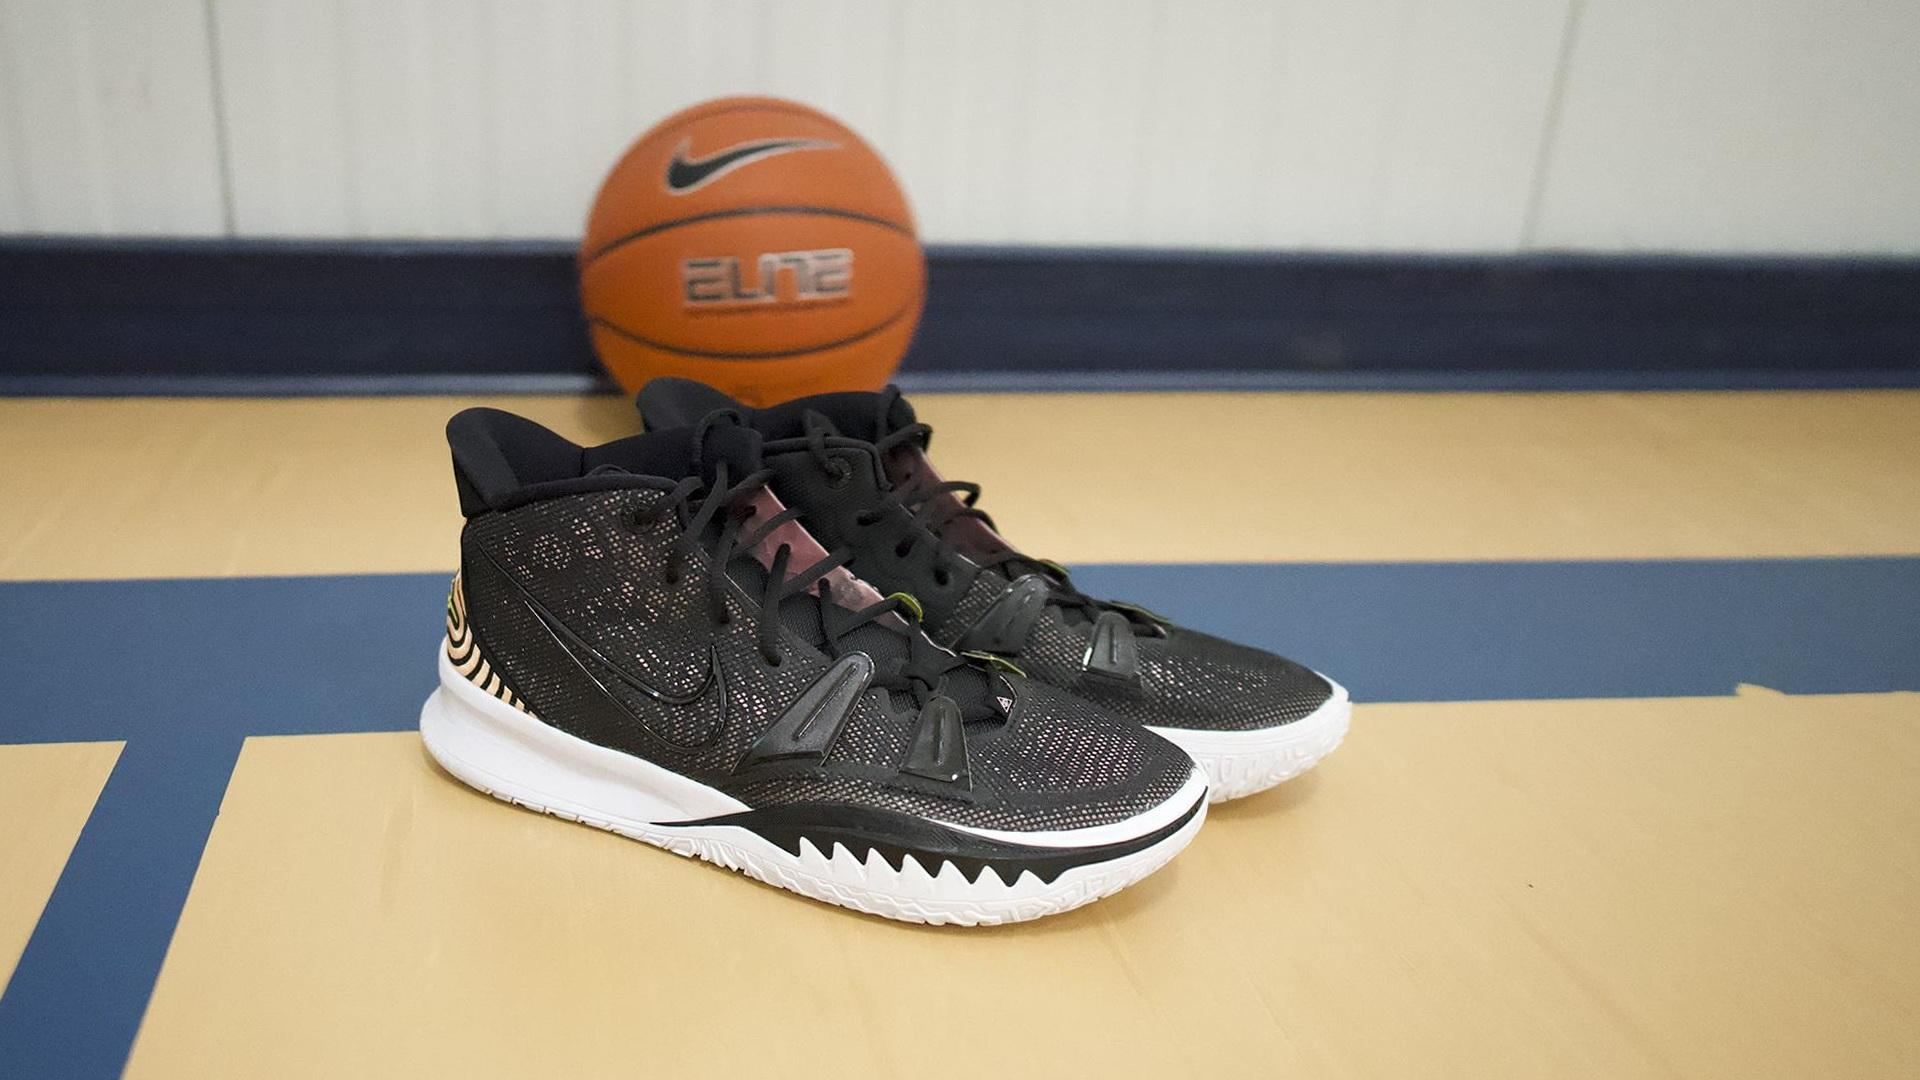 10 Best Kyrie Shoes in 2021